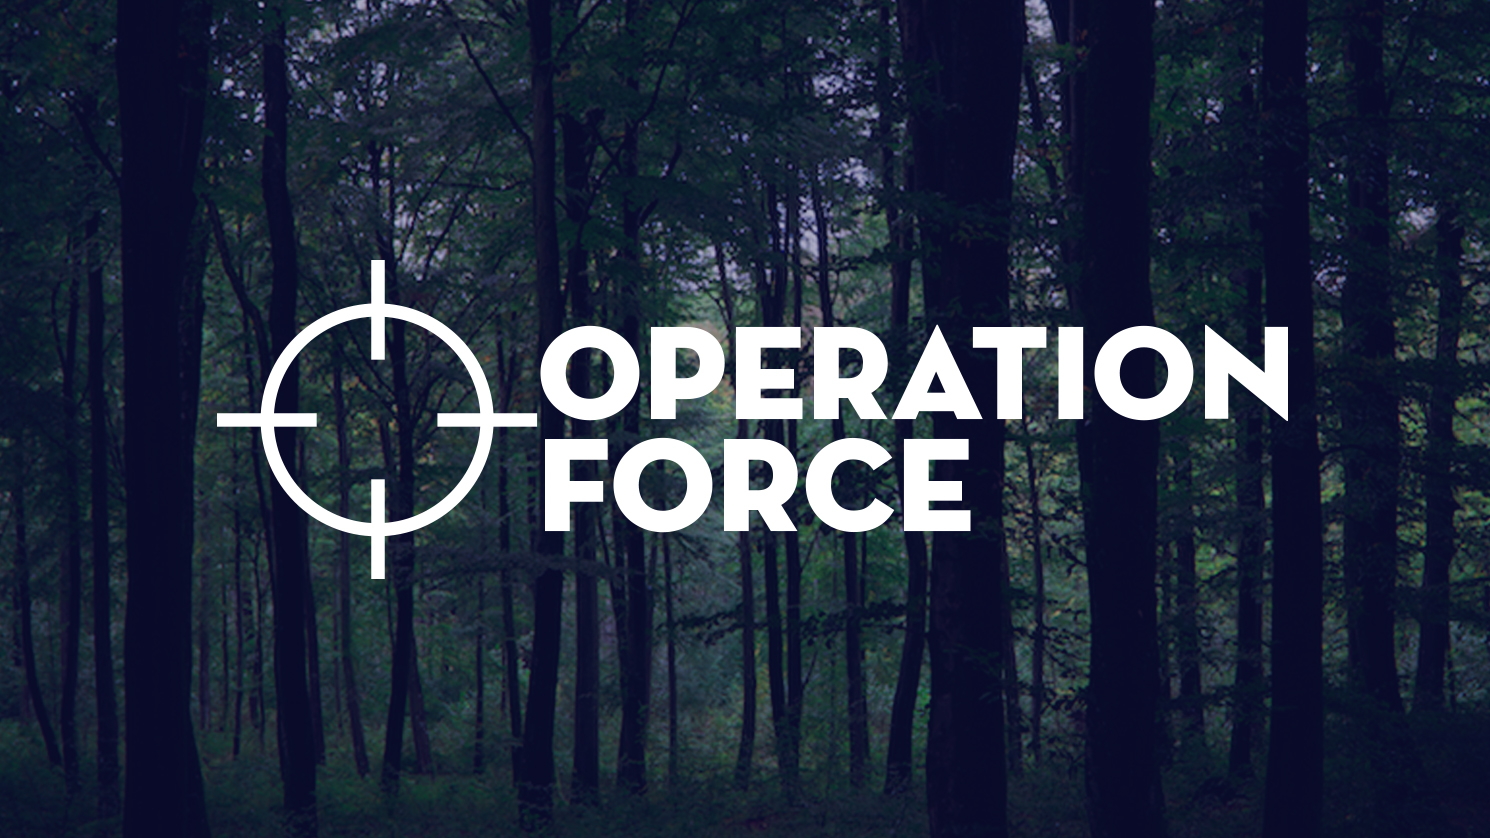 Operation force